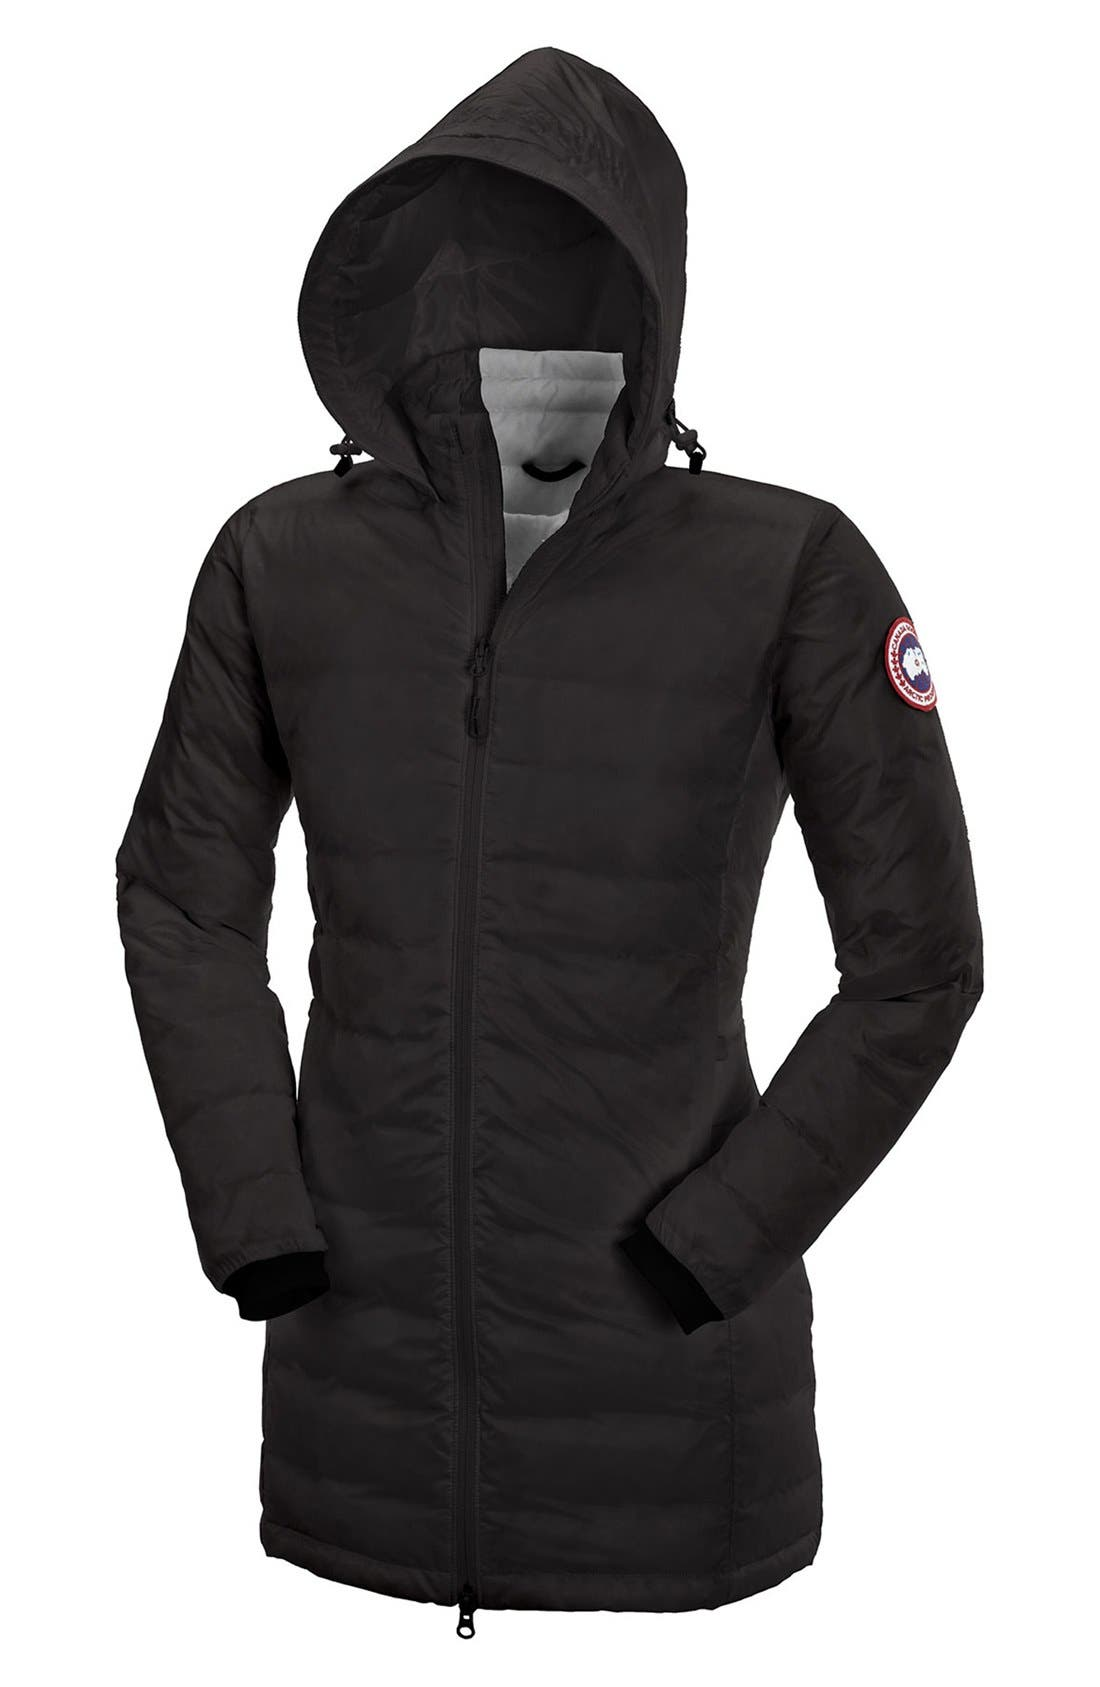 CANADA GOOSE, 'Camp' Slim Fit Hooded Packable Down Jacket, Alternate thumbnail 7, color, BLACK